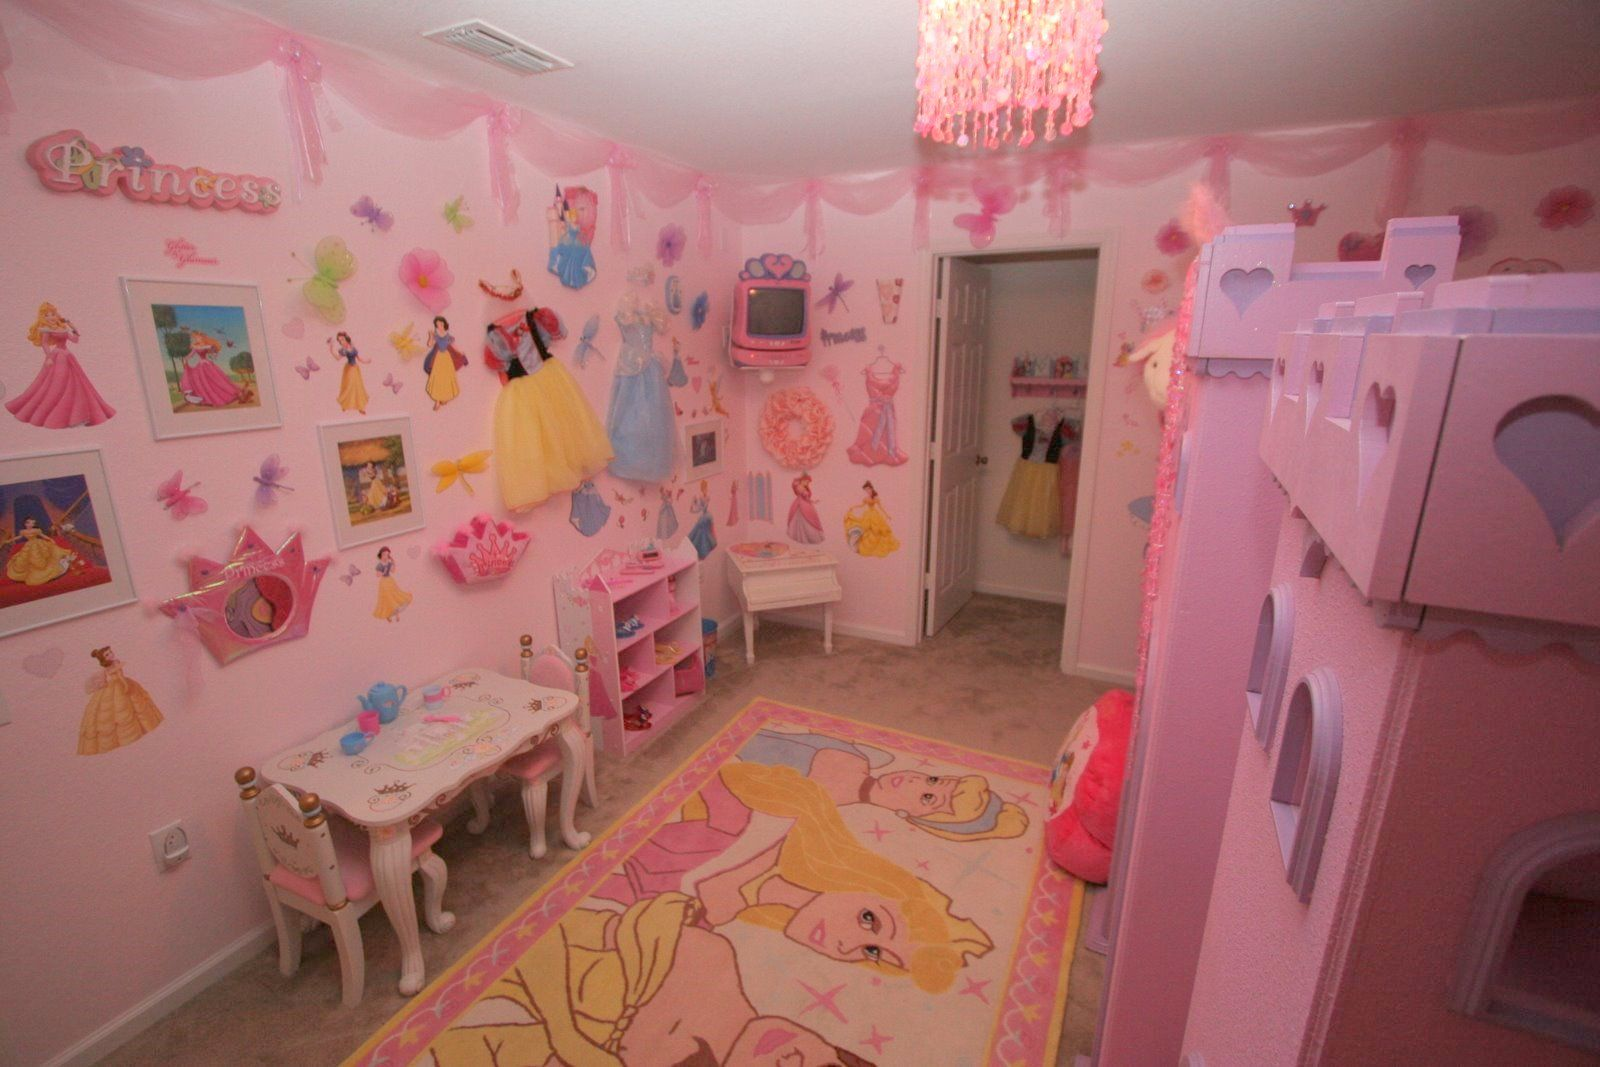 Disney Princess Bedroom Ideas & Disney Princess Bedroom Ideas | All about her!!! | Pinterest ...